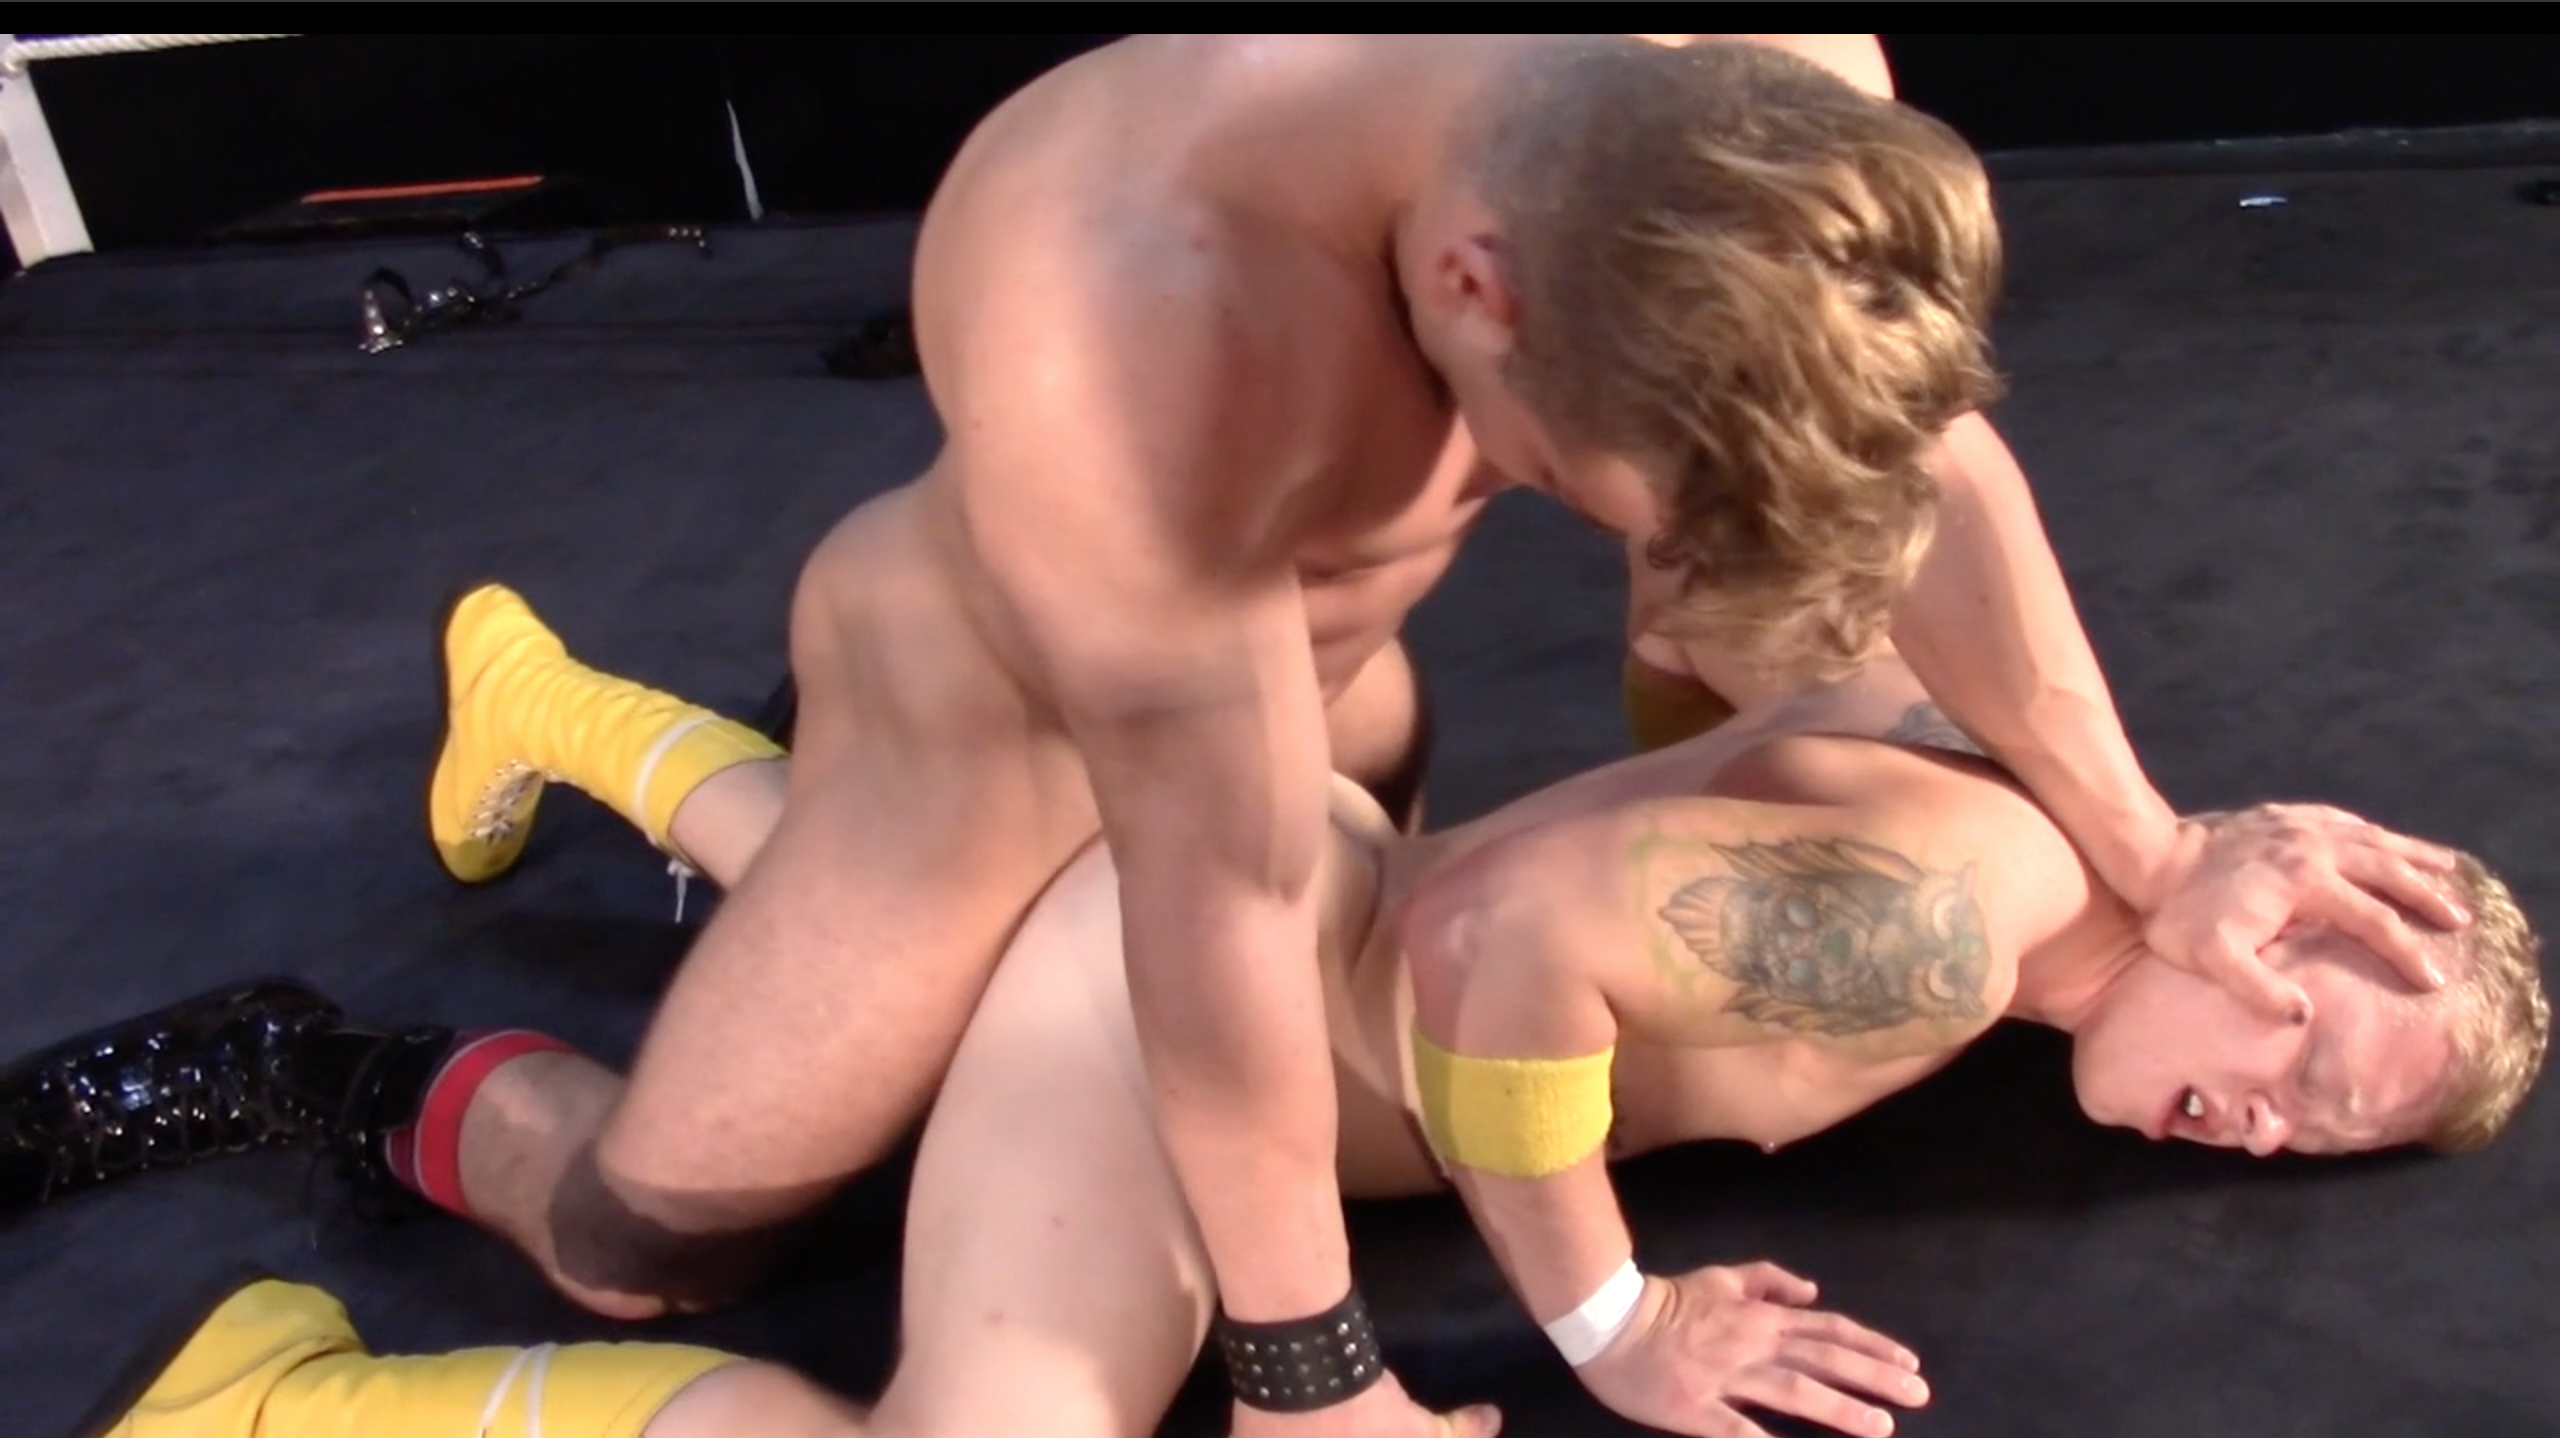 Worship this big black cock like you really mean it - 2 part 3